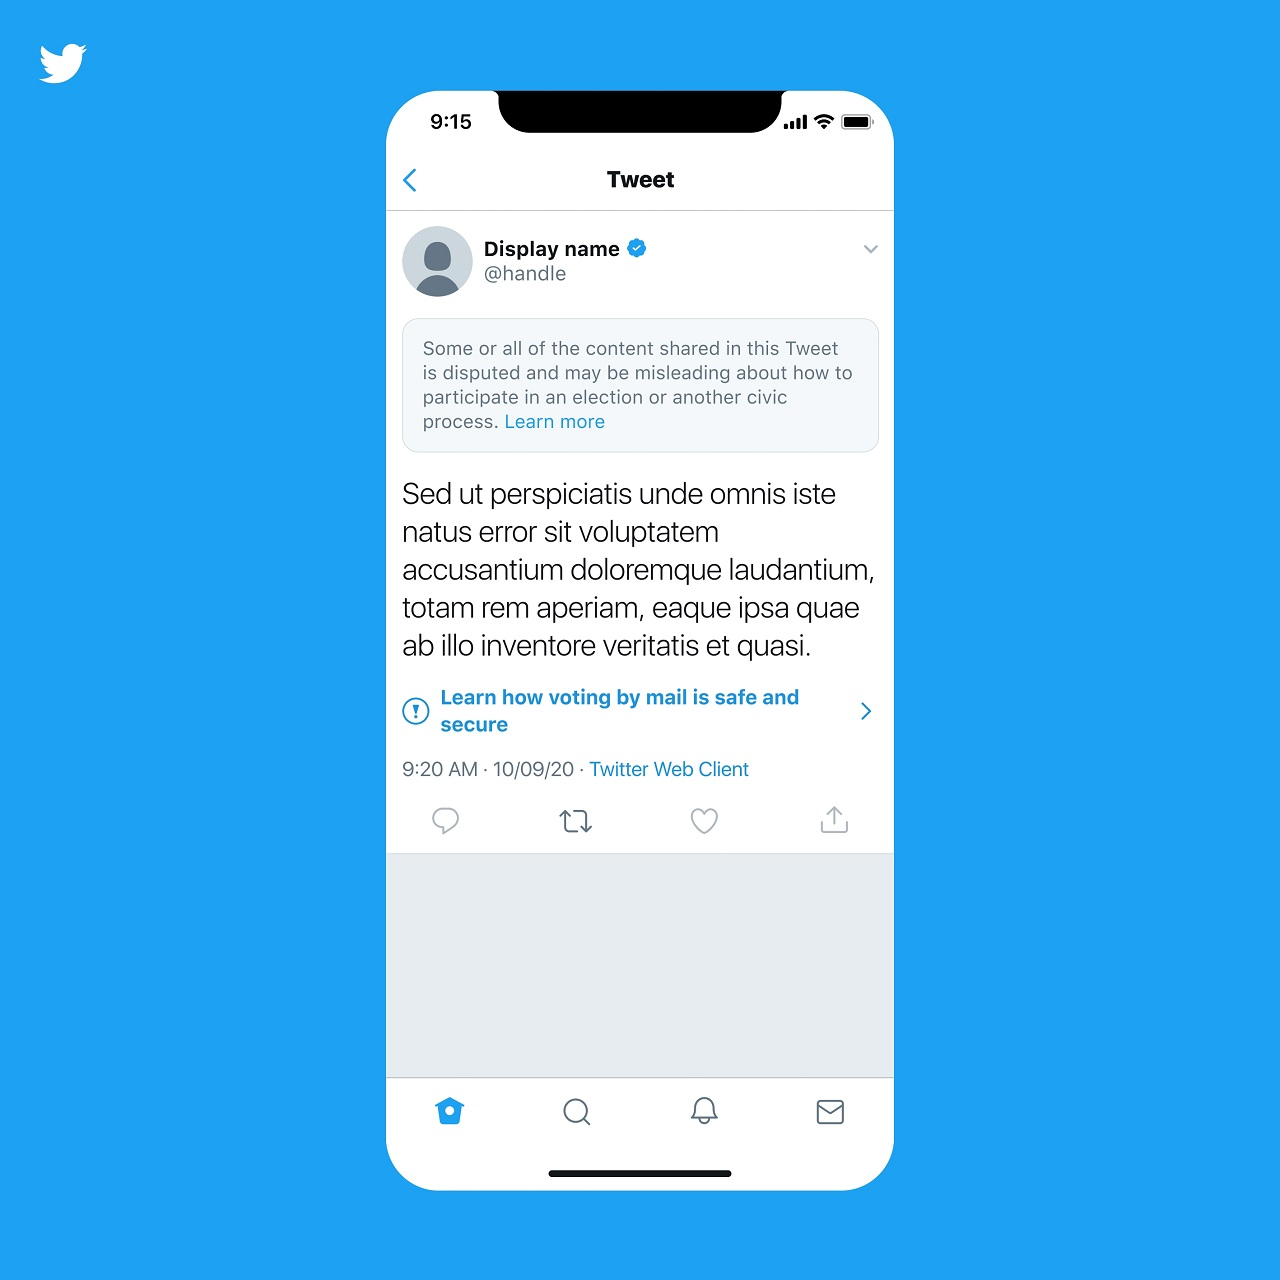 Twitter's new policies and systems will limit views to the posting of disinformation about the 2020 election.